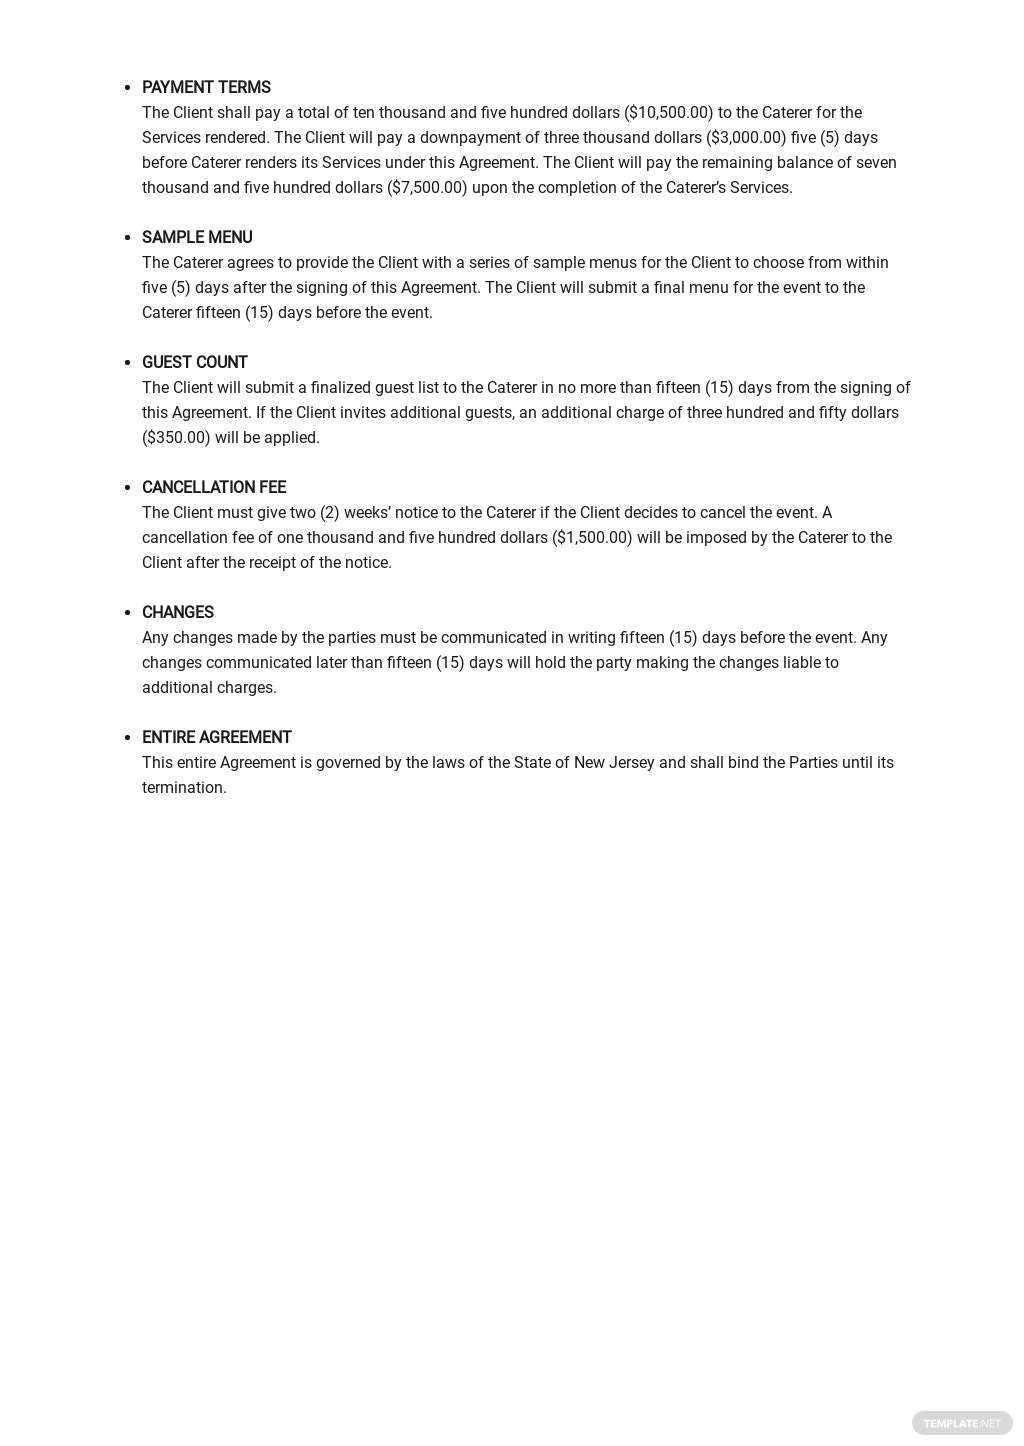 Catering Contract Agreement Template 2.jpe